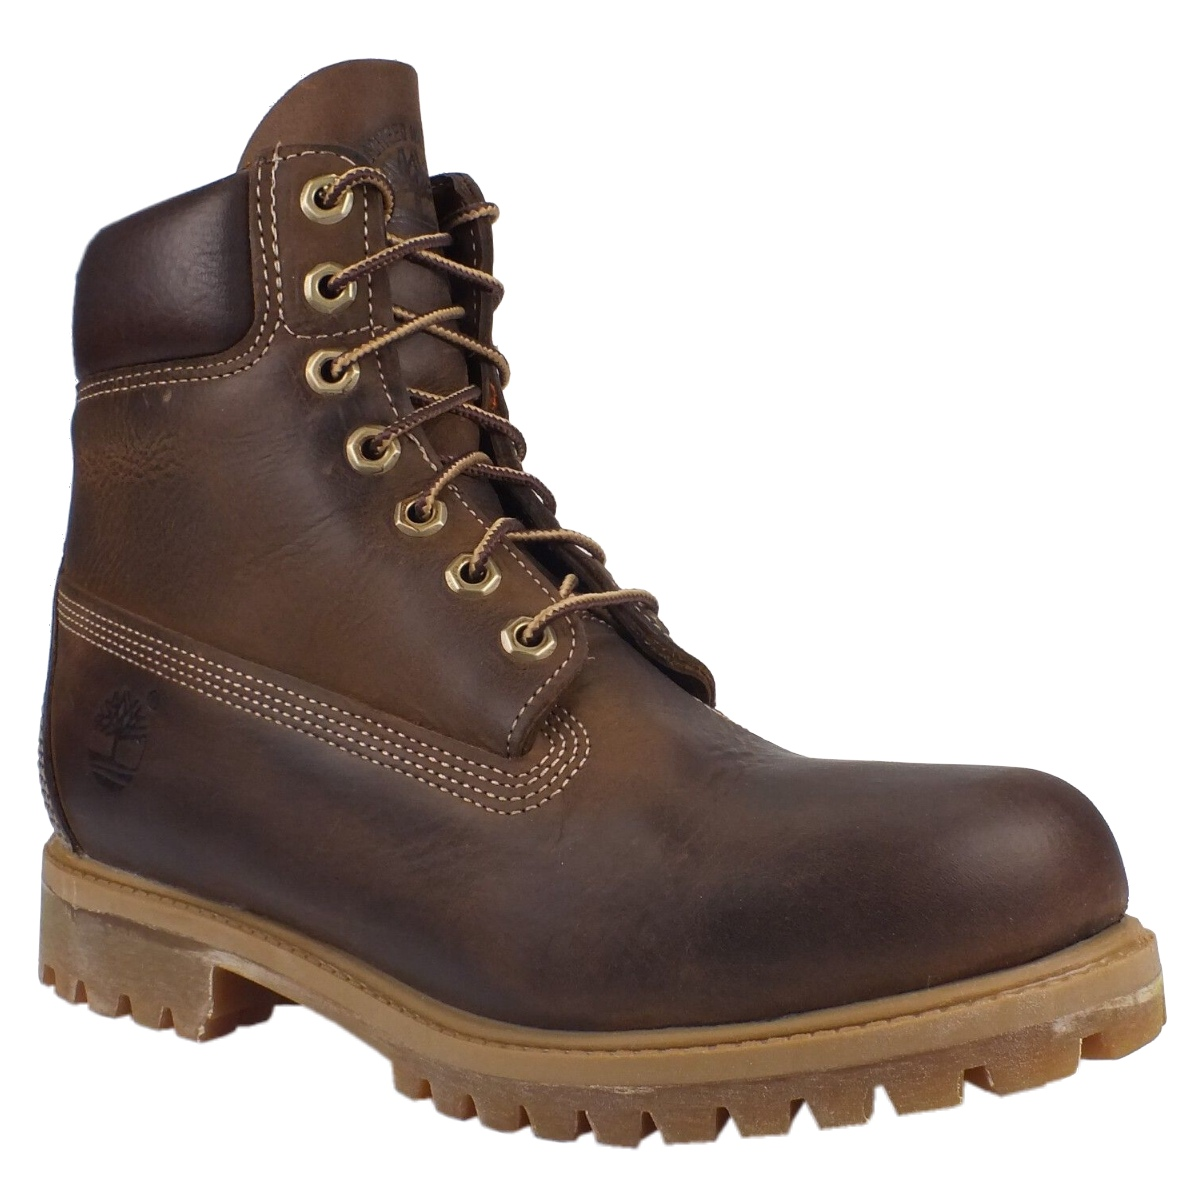 timberland heritage classic 6 inch premium waterproof boot schuhe stiefel herren ebay. Black Bedroom Furniture Sets. Home Design Ideas